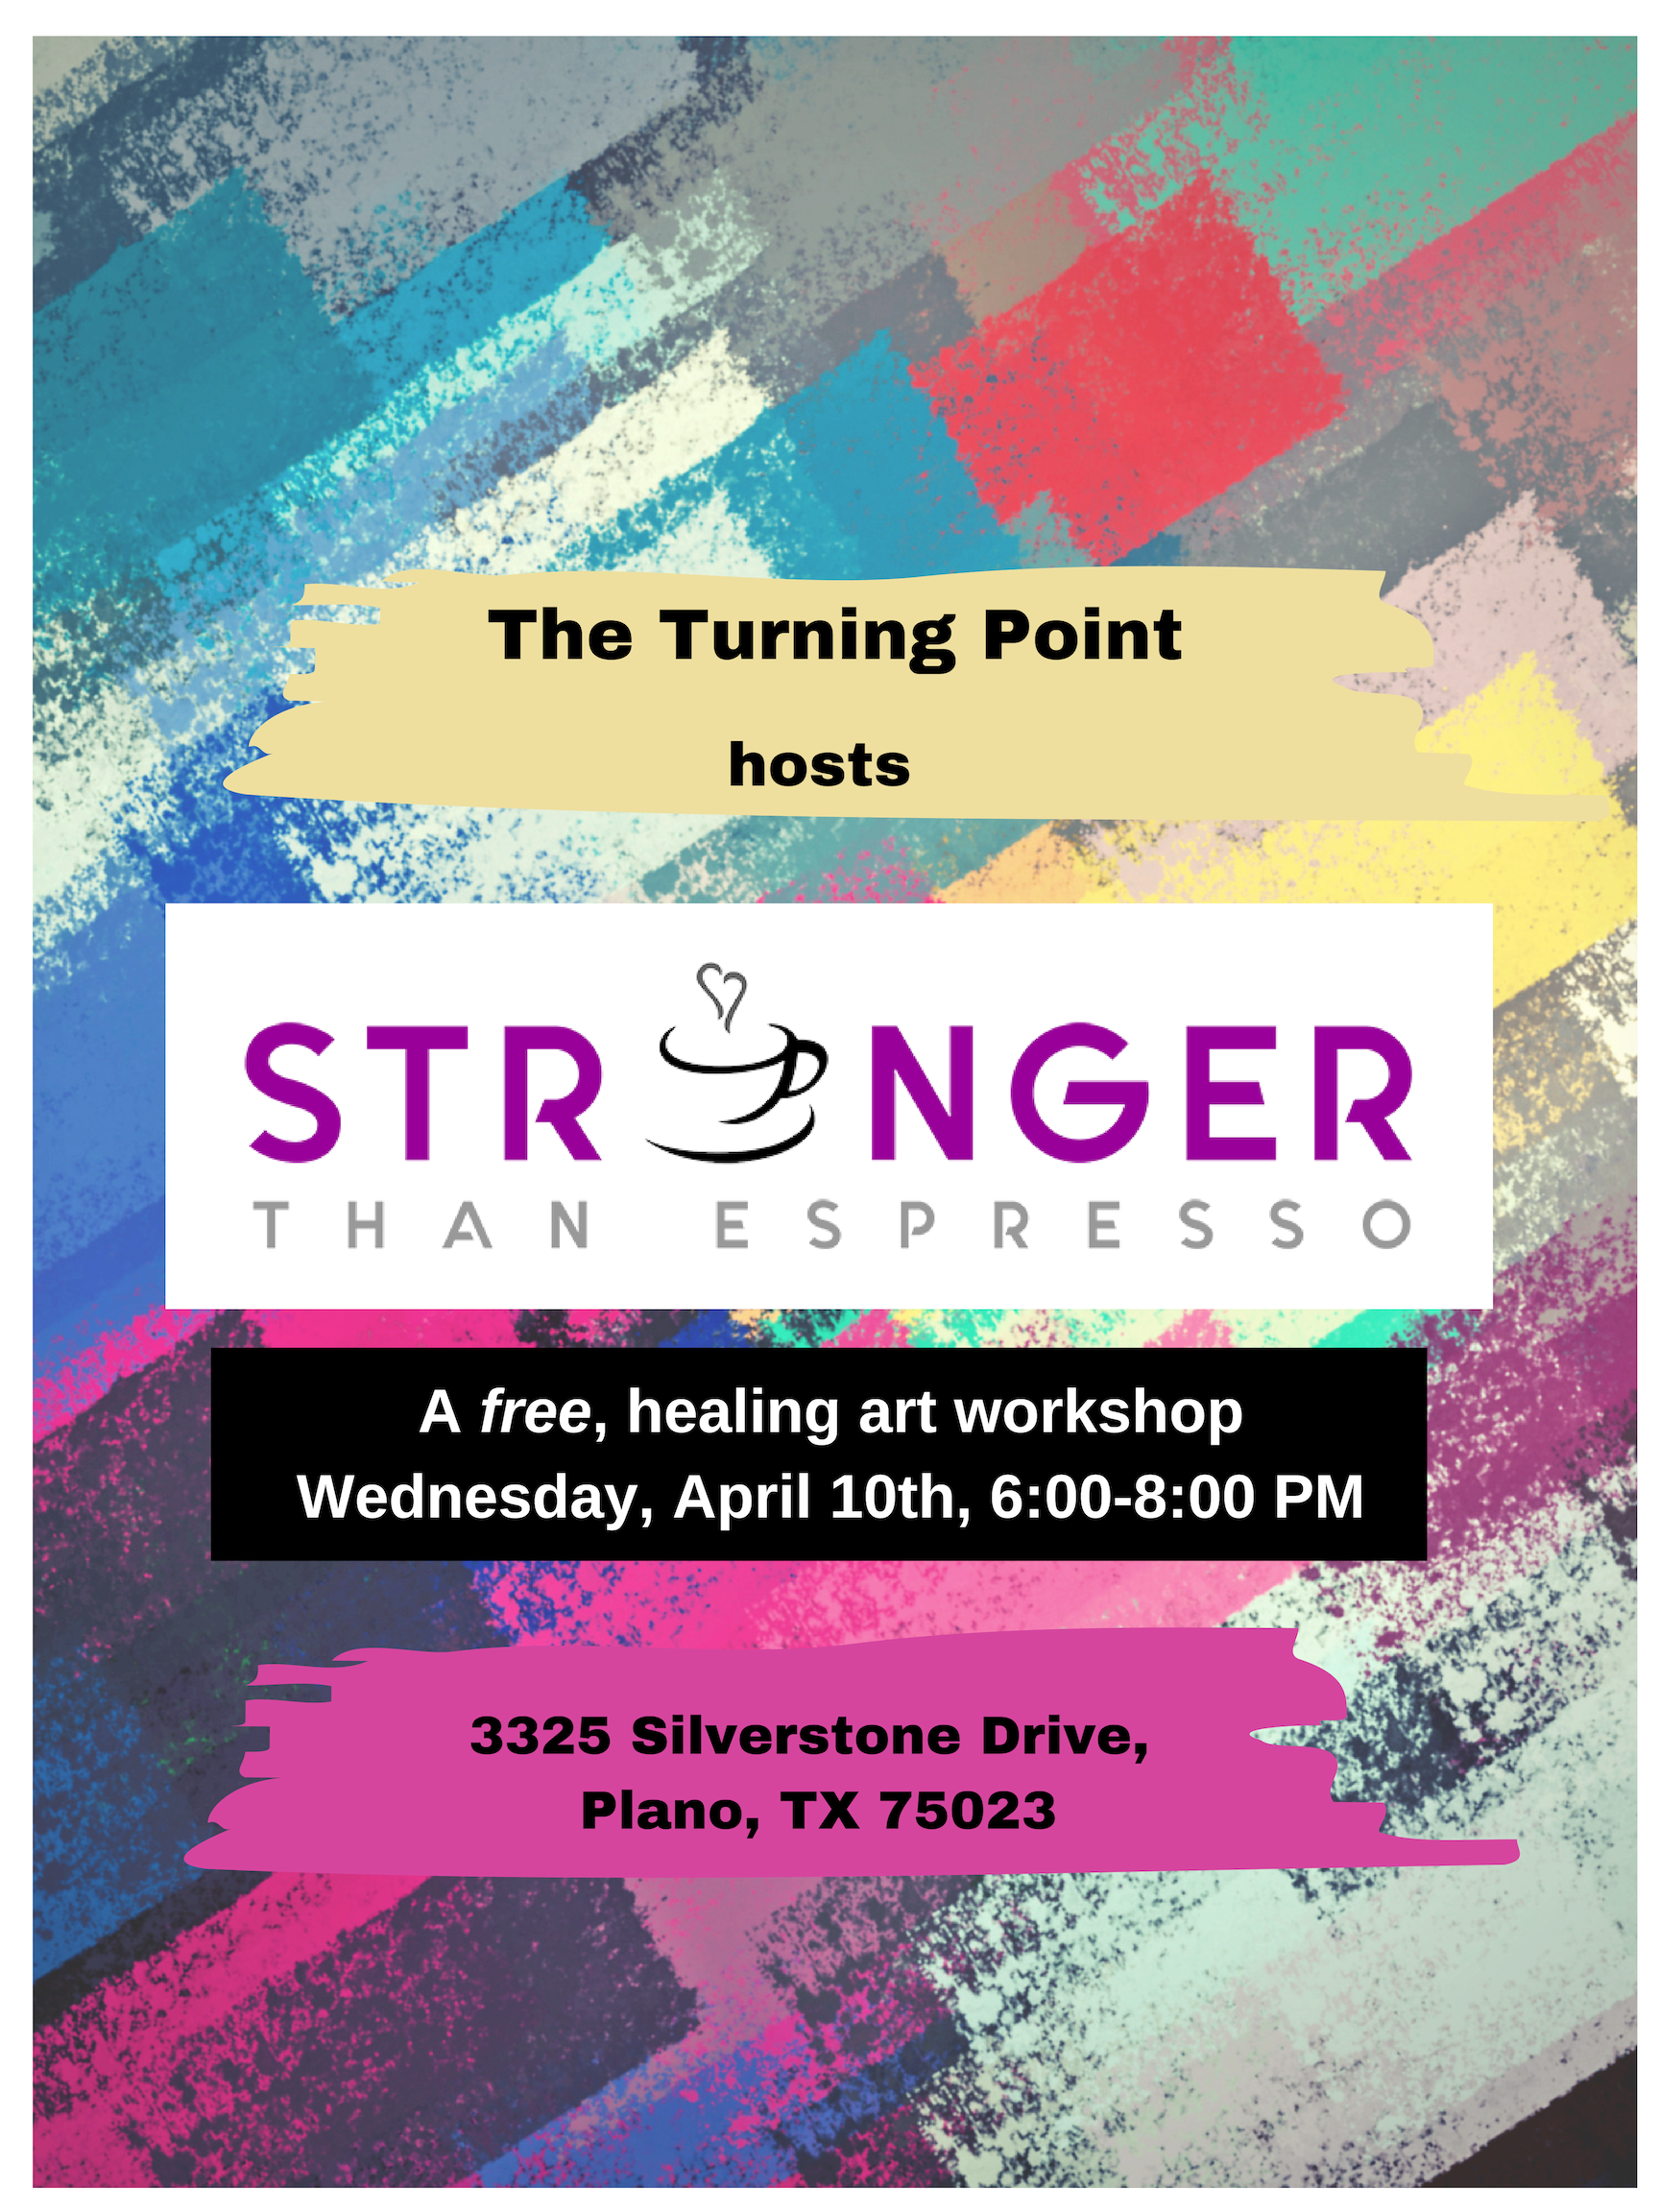 Healing Art Workshop by Stronger than Espresso